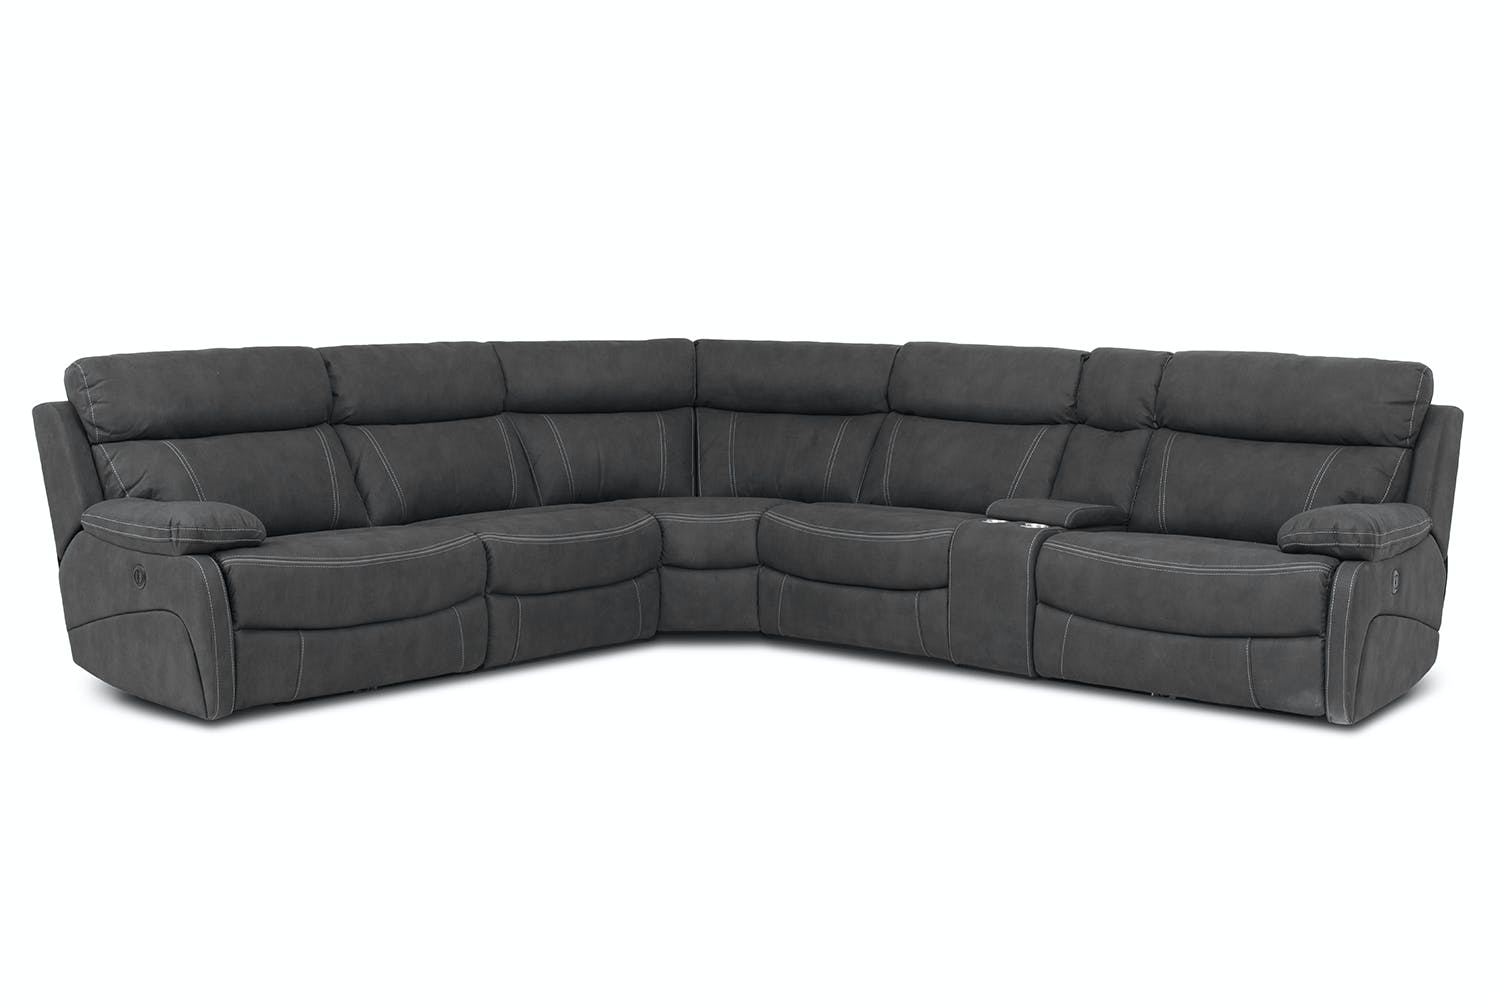 Super Arlo Corner Sofa Large Download Free Architecture Designs Embacsunscenecom